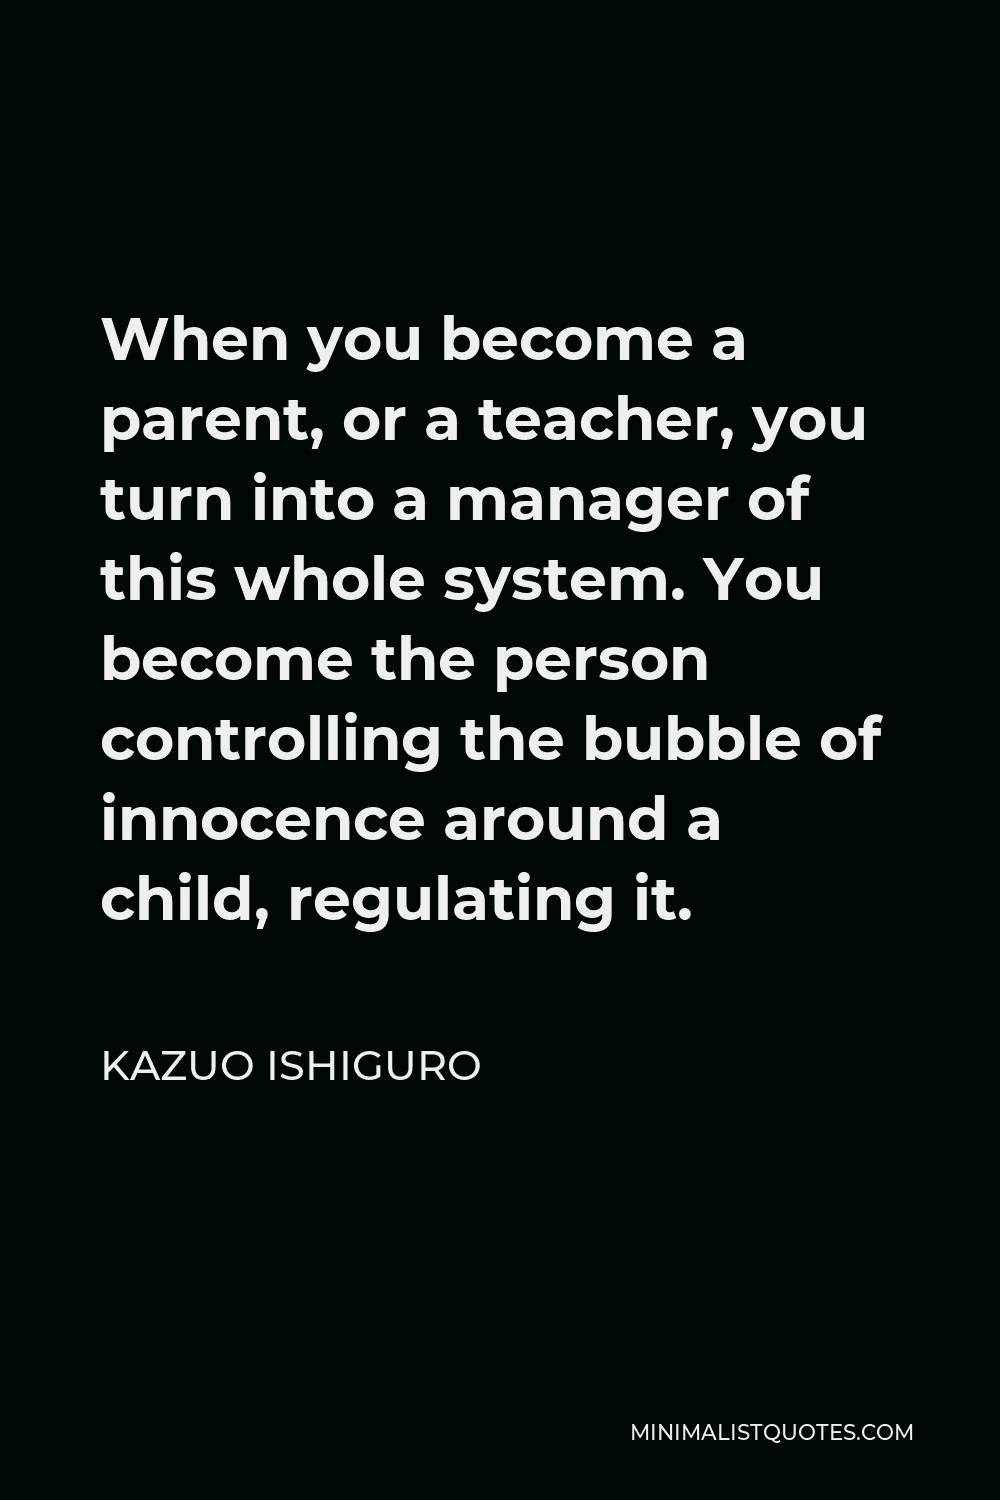 Kazuo Ishiguro Quote - When you become a parent, or a teacher, you turn into a manager of this whole system. You become the person controlling the bubble of innocence around a child, regulating it.